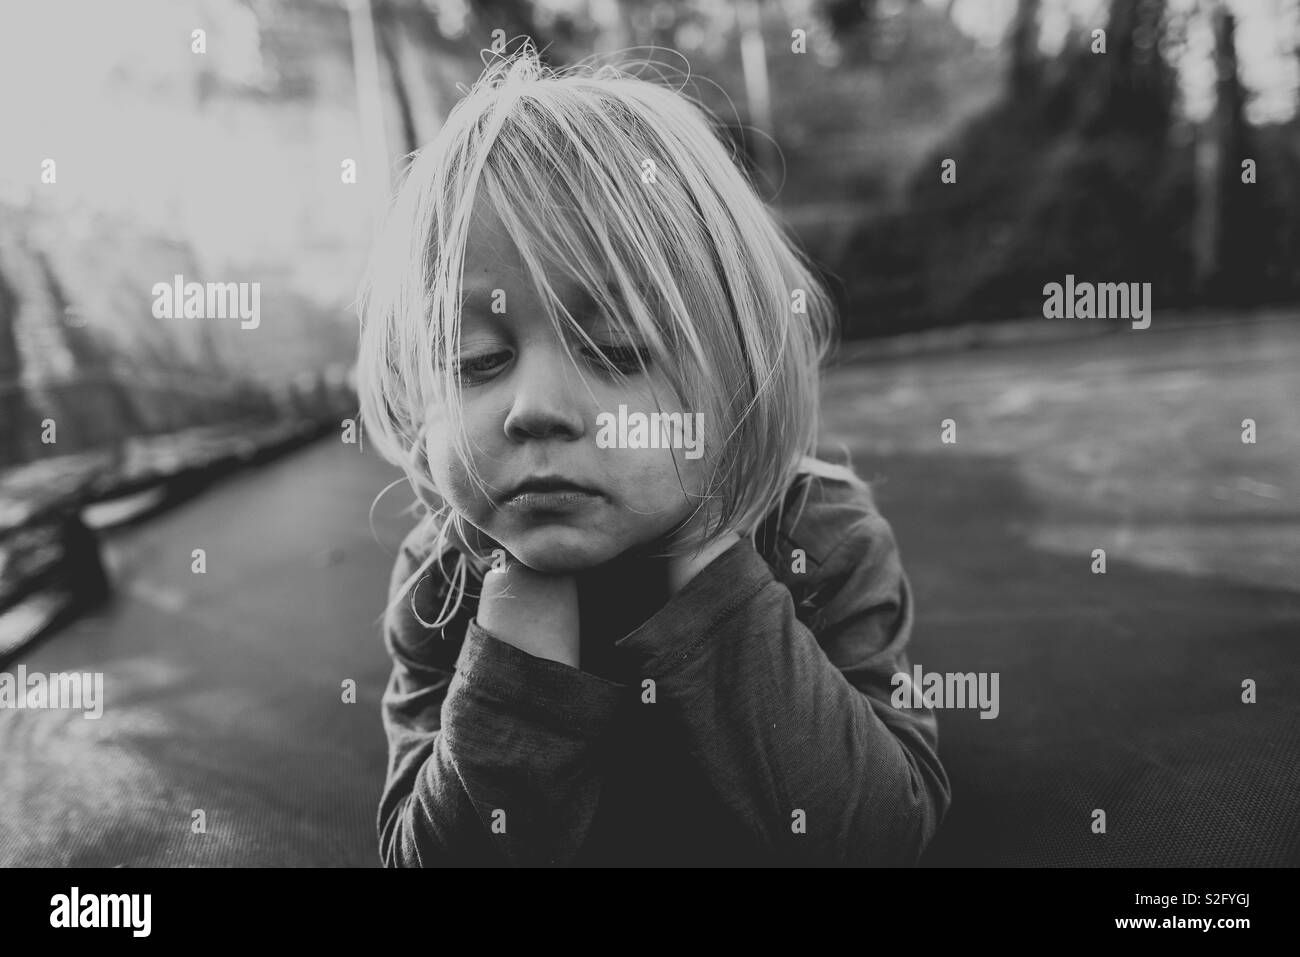 Fed up and bored child - Stock Image